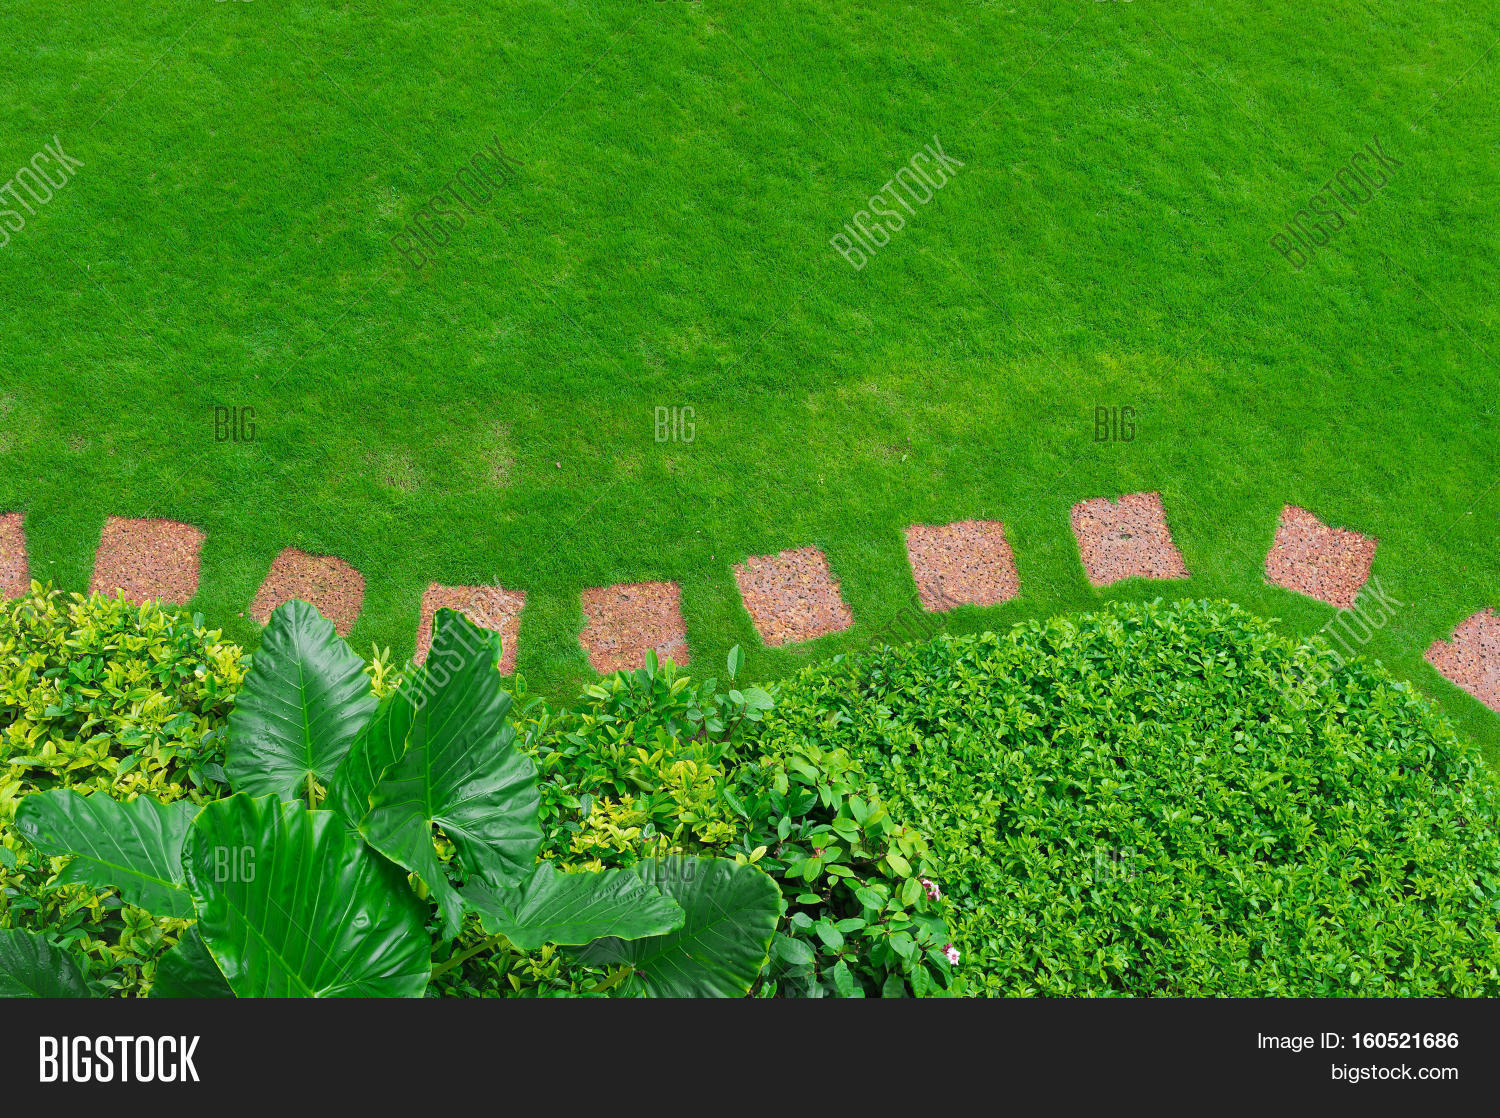 Pathways green lawns landscaping image photo bigstock for Garden scaping